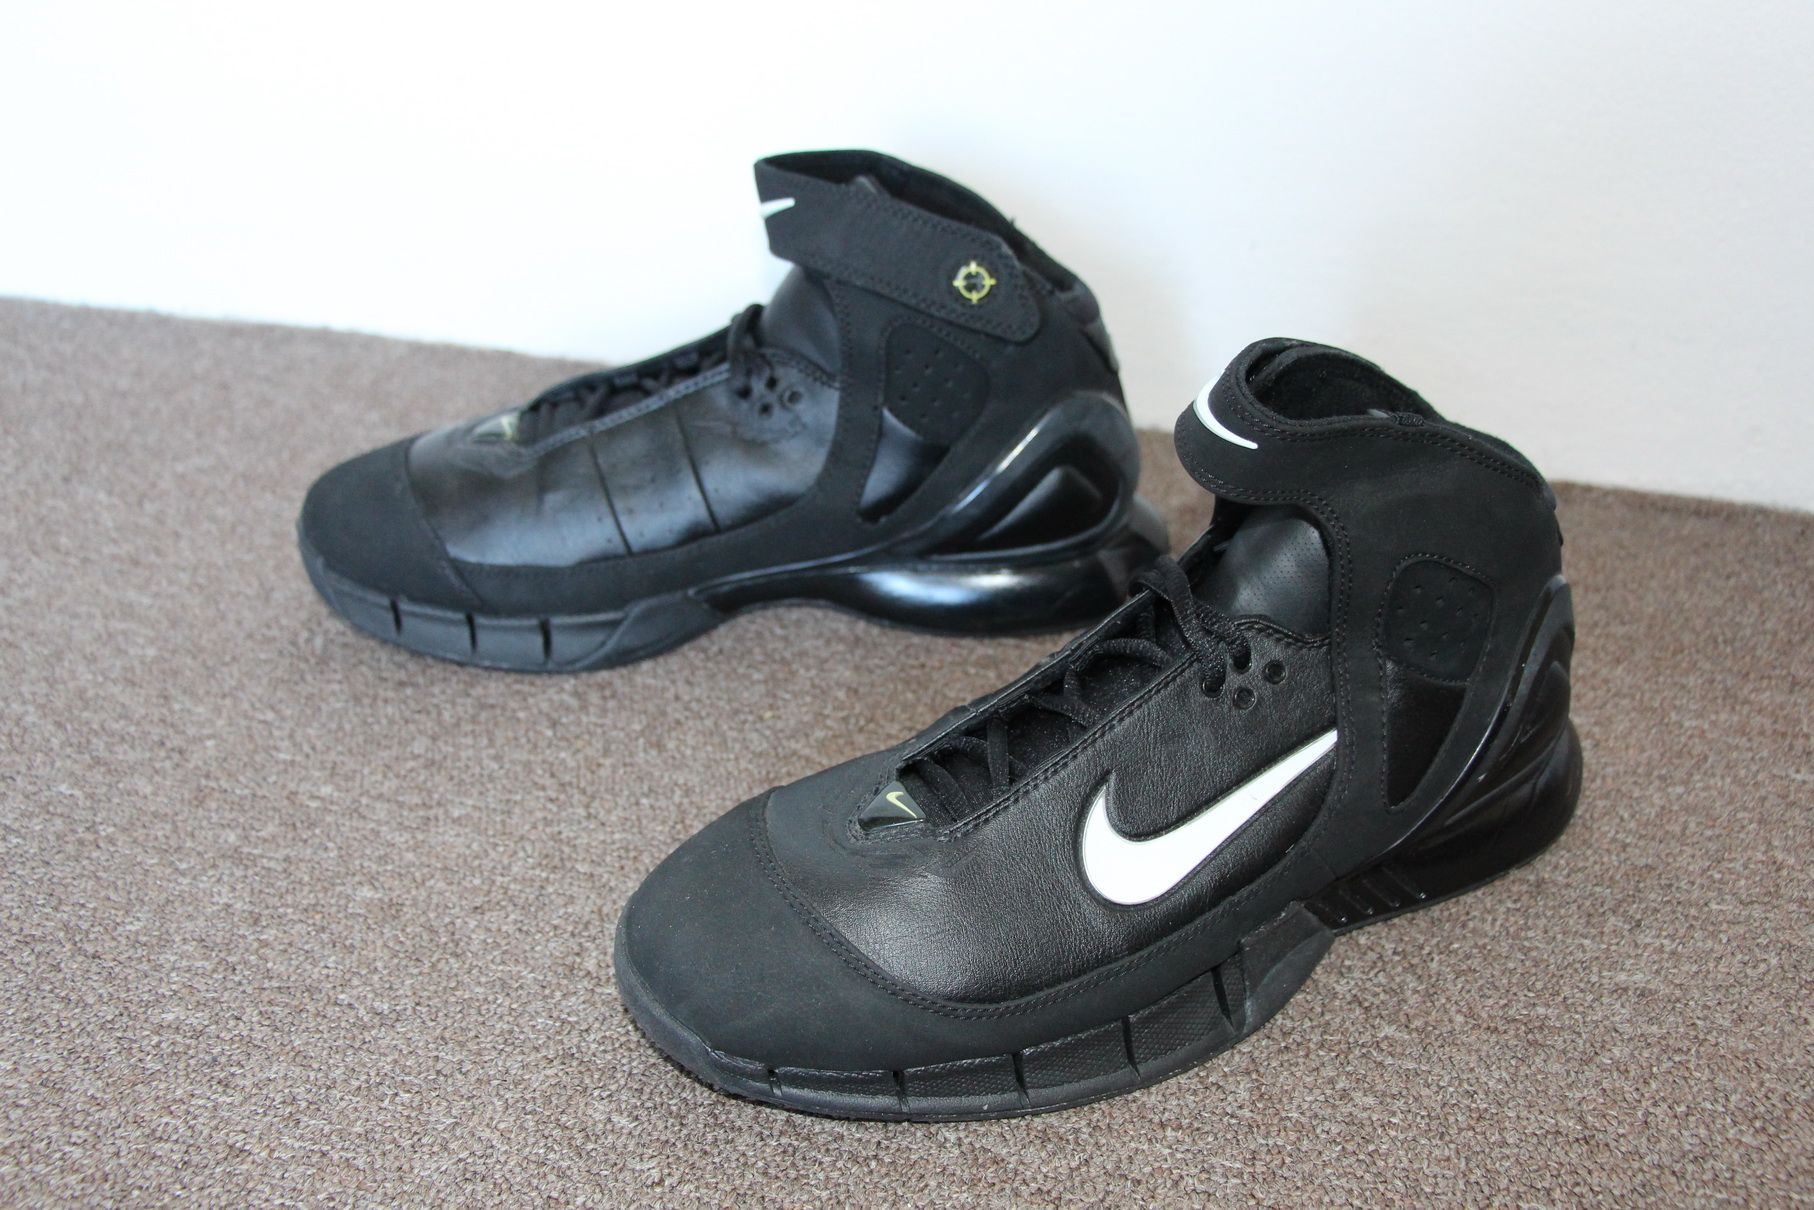 first rate official store online retailer 2005 Nike Air Zoom Huarache 2K5 | Nike Air Zoom Huarache 2k5 ...